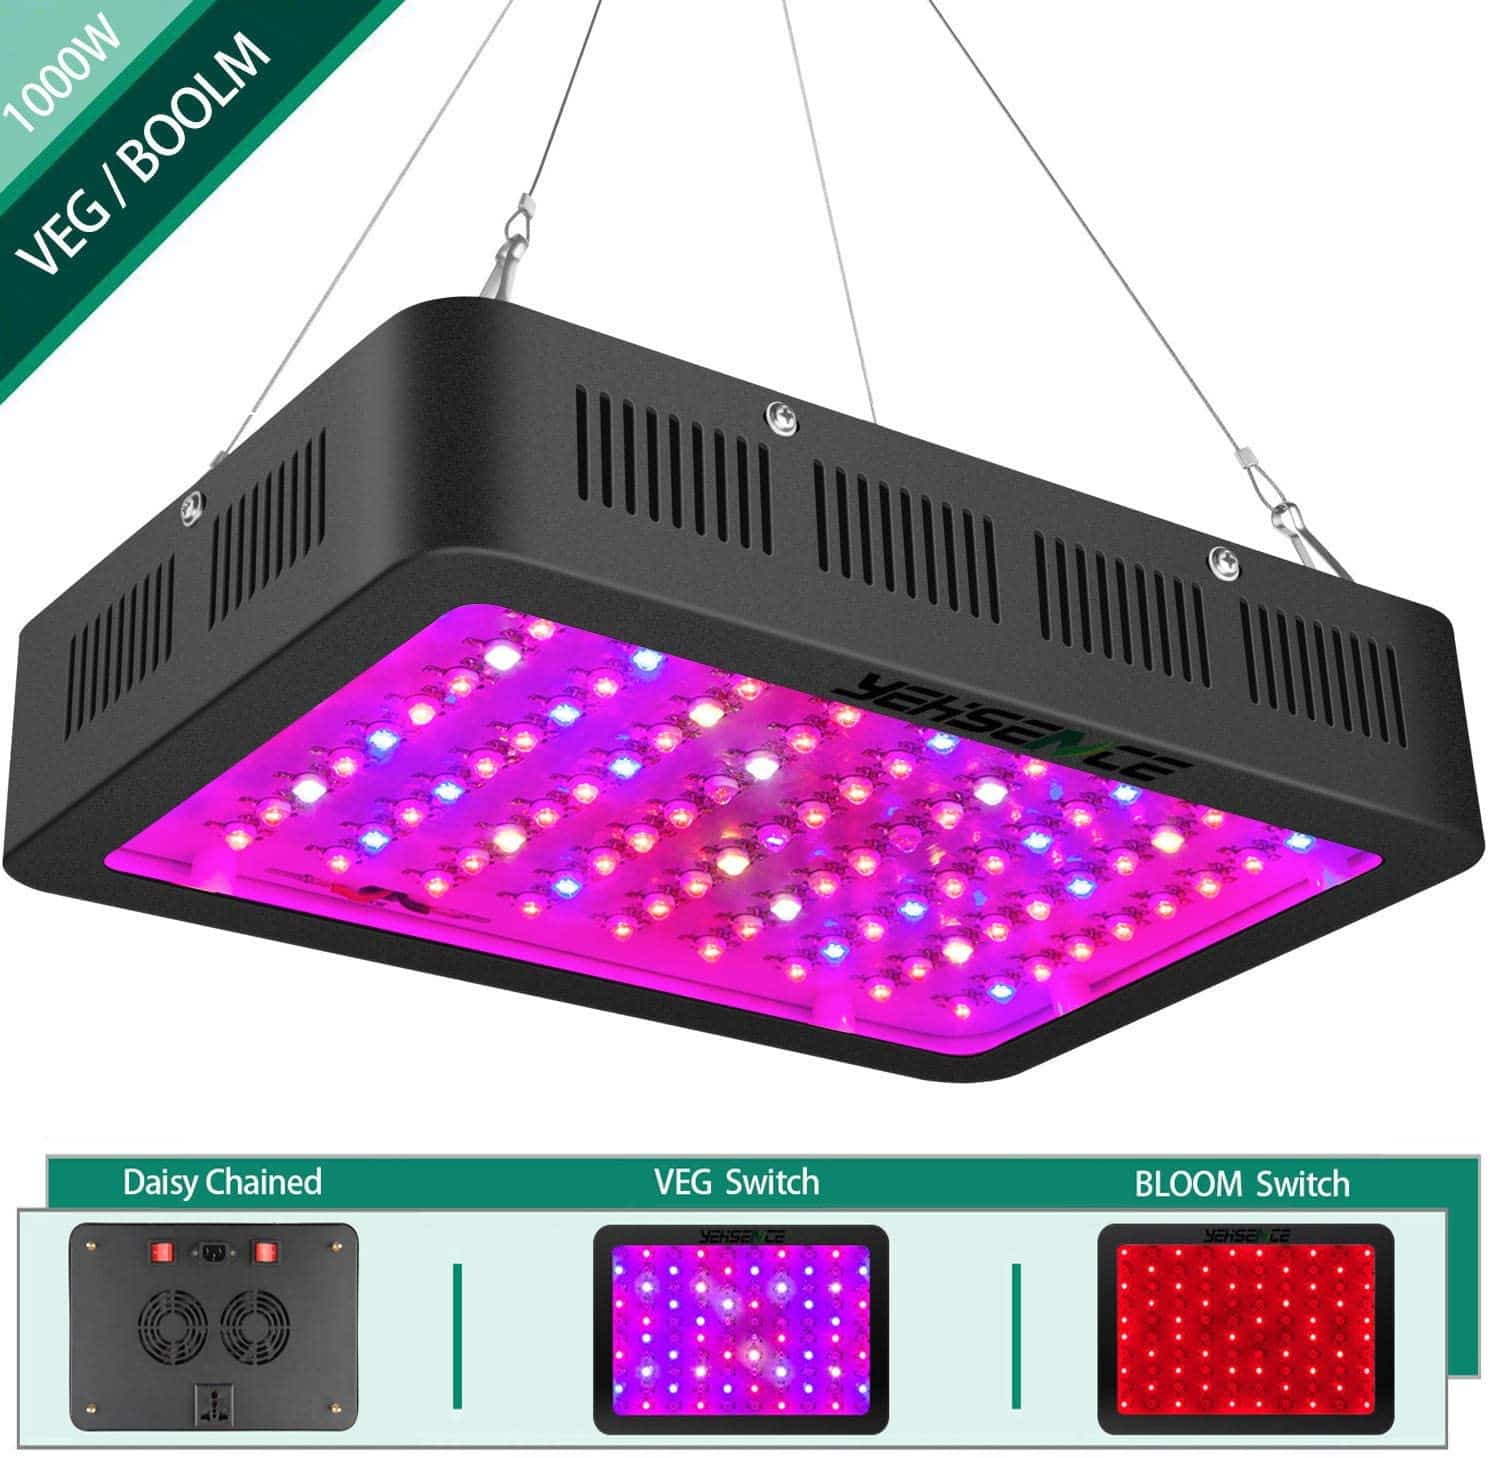 Yehsence LED Grow Light